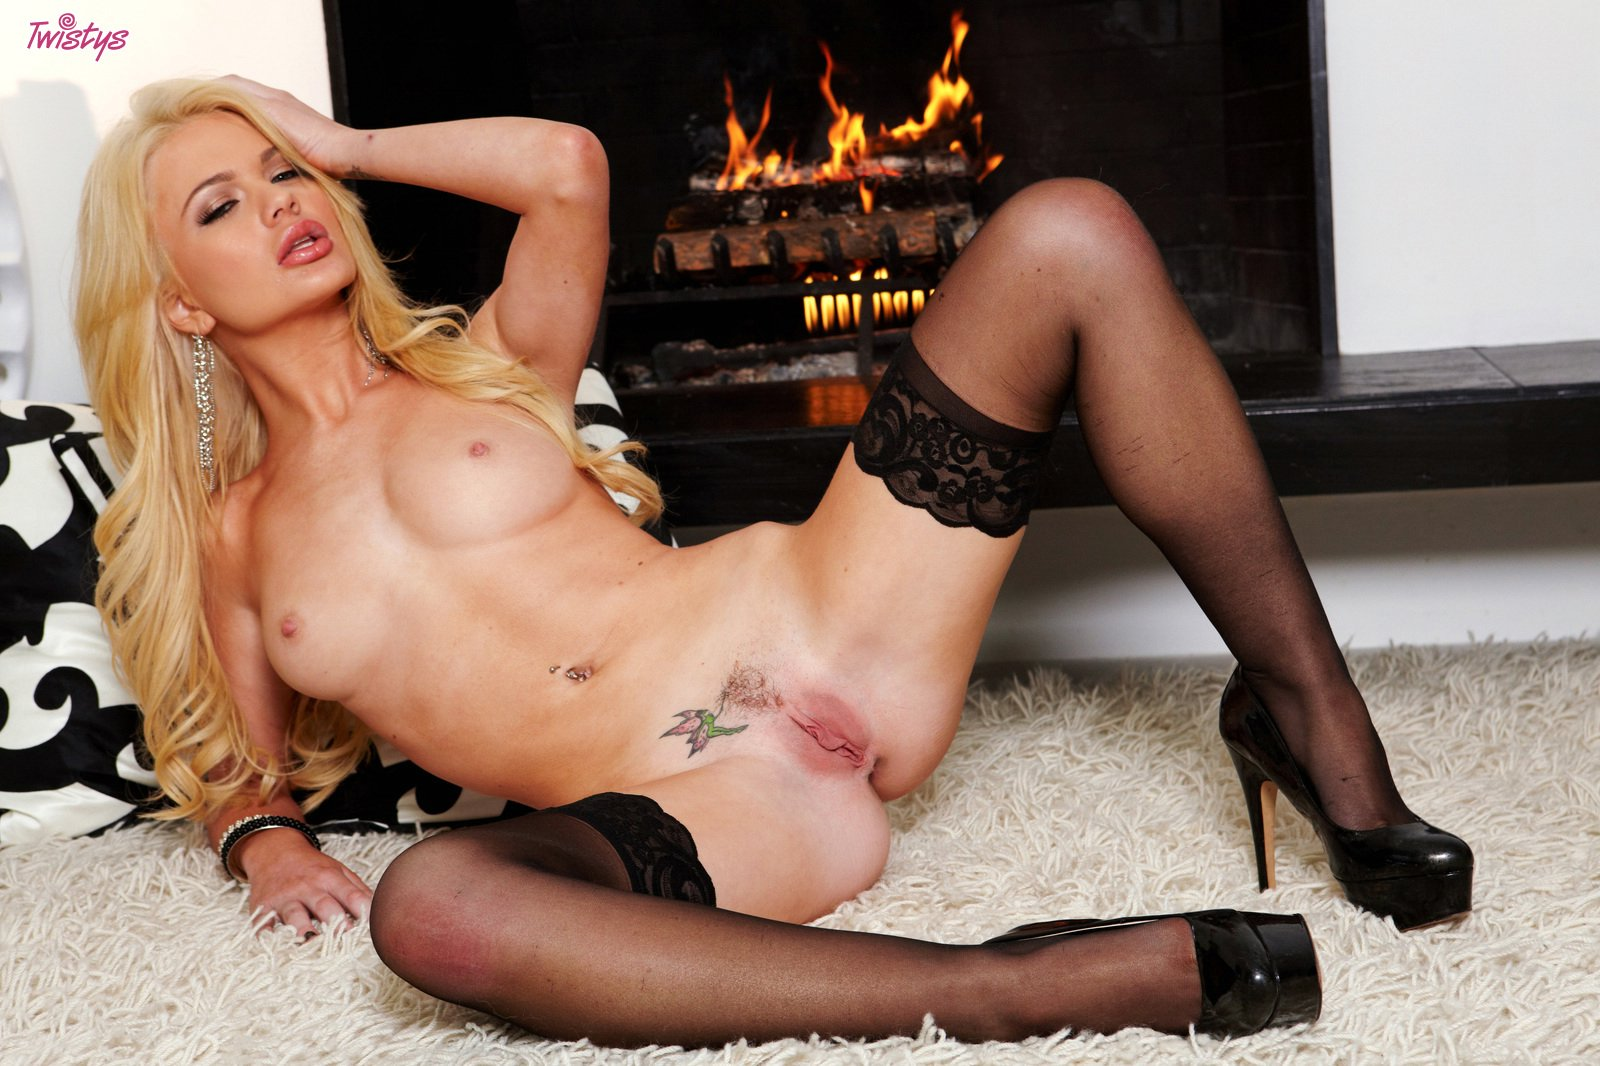 Alexis silver posing in stockings all personal